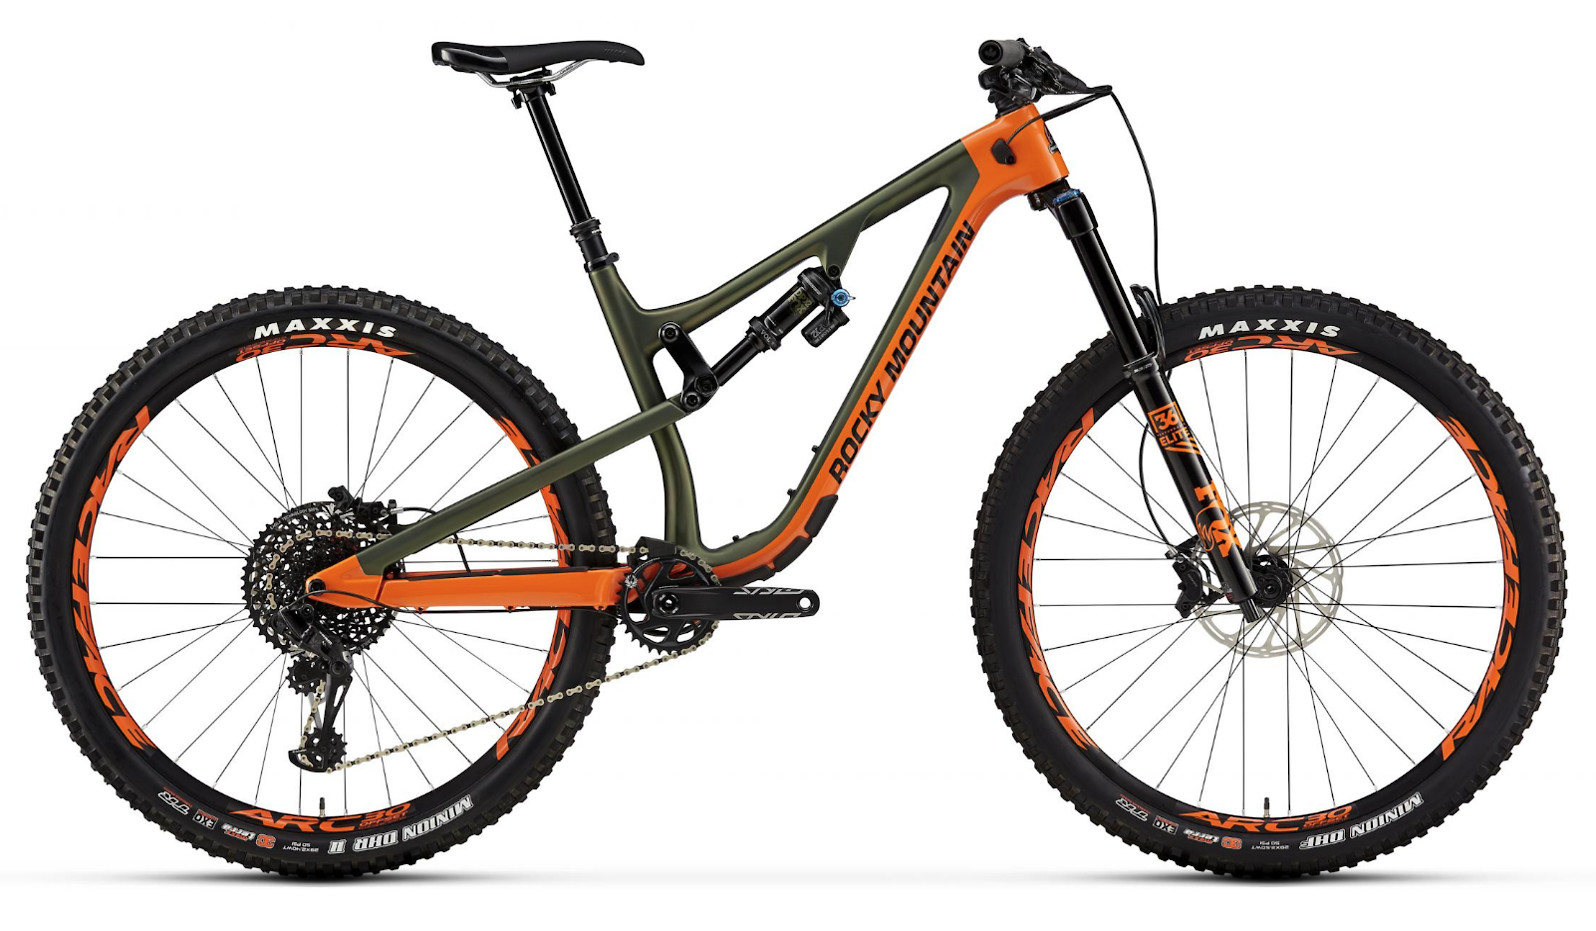 2019 Rocky Mountain Instinct Carbon 90 BC Edition - Army green and orange